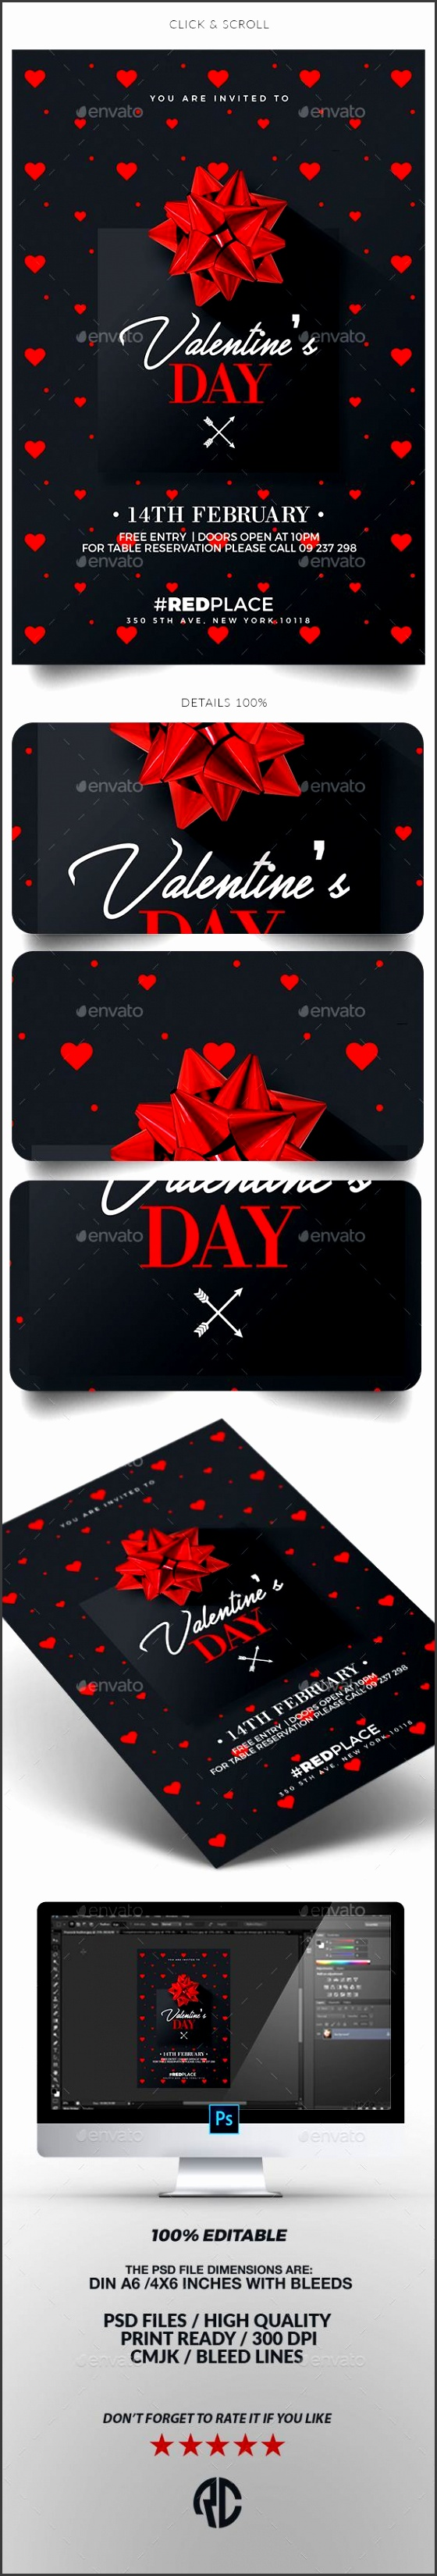 valentines day invitation card template psd